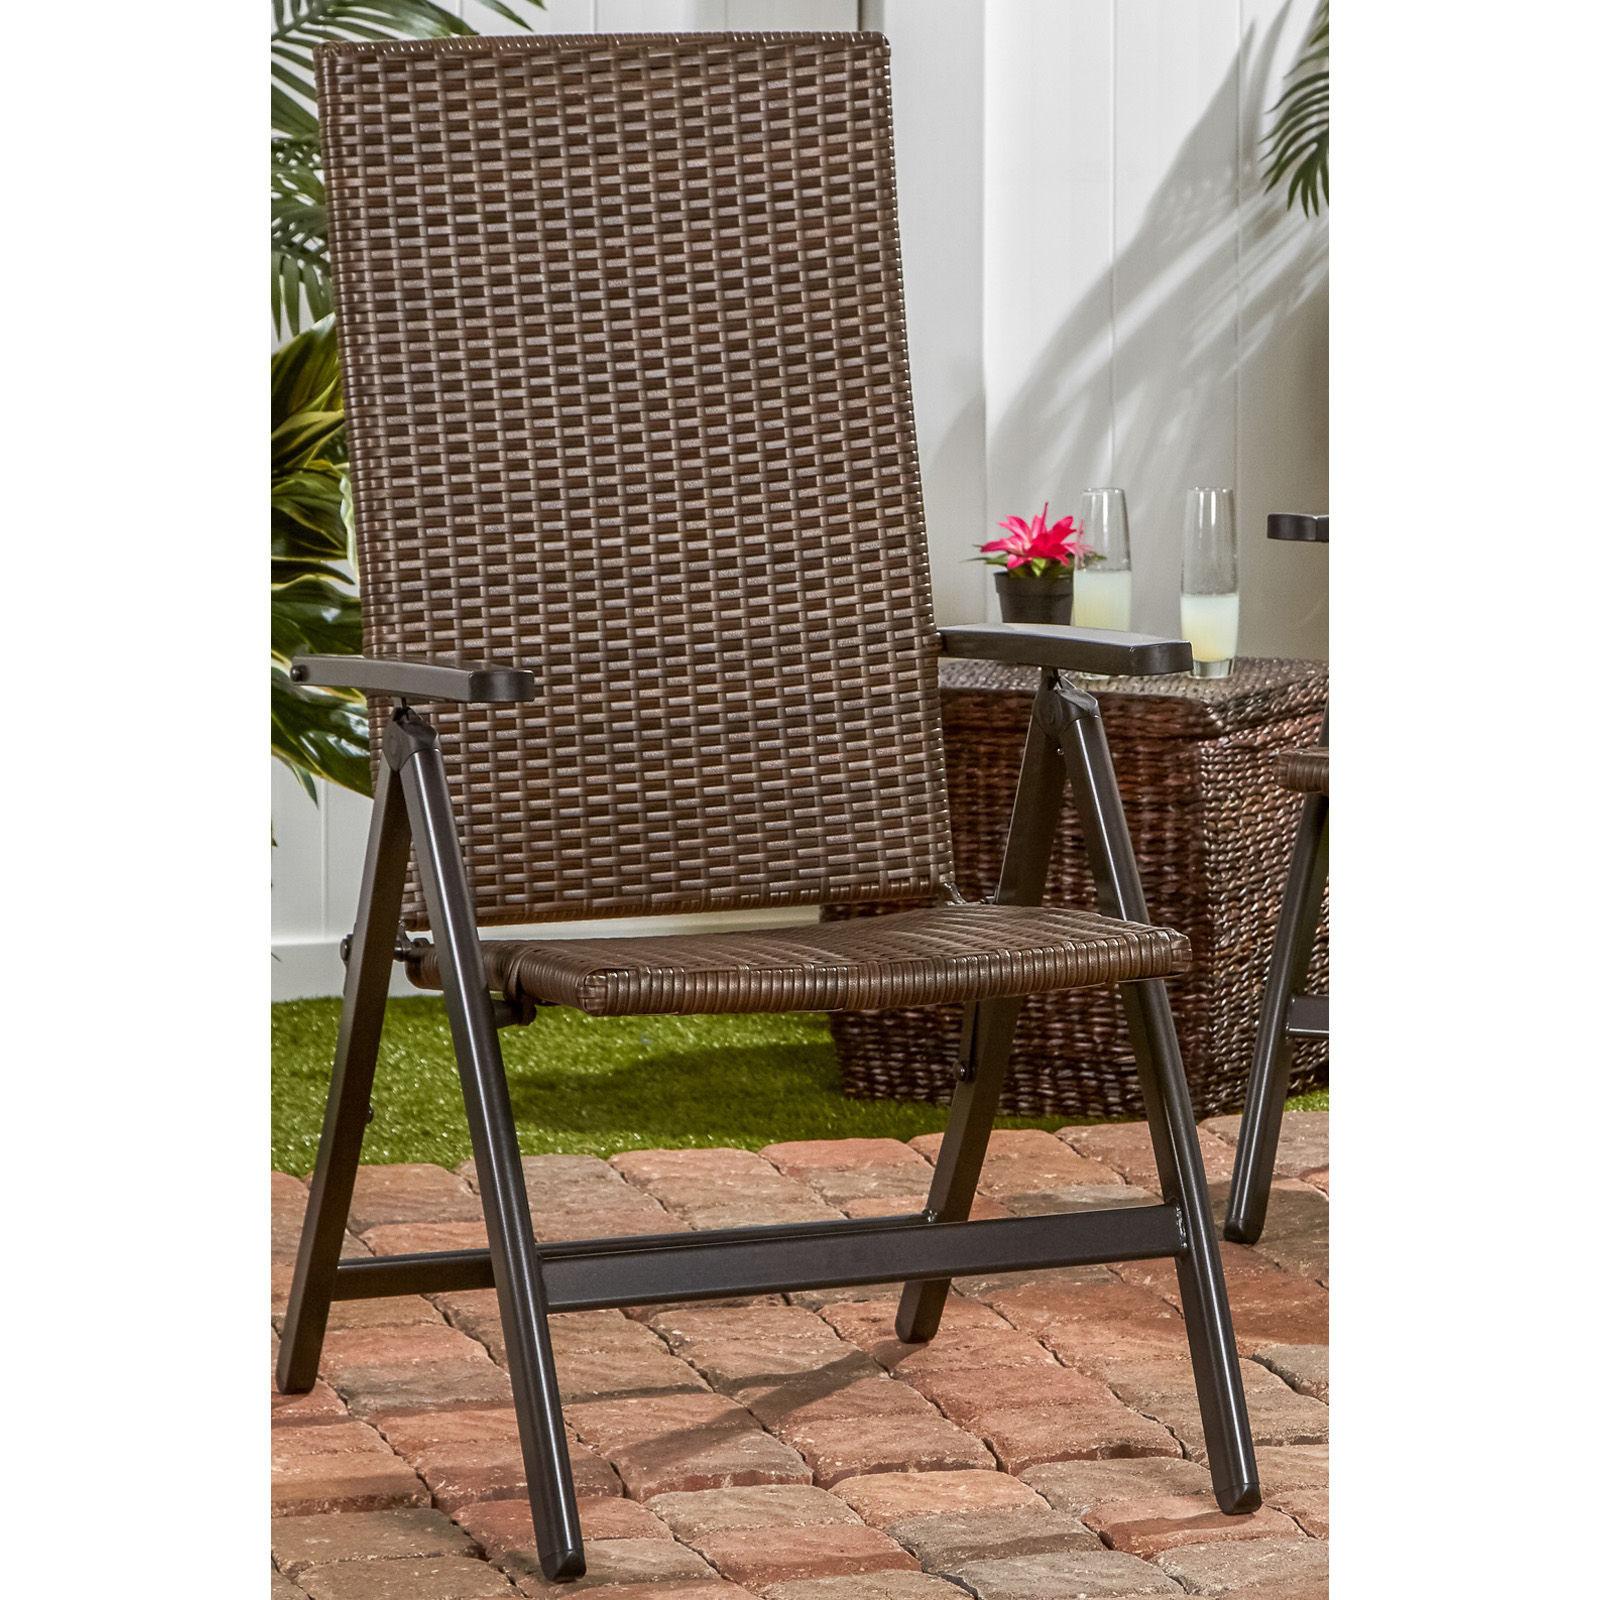 Woven Lawn Chair Greendale Home Fashions Woven Outdoor Wicker Reclining Lawn Chair